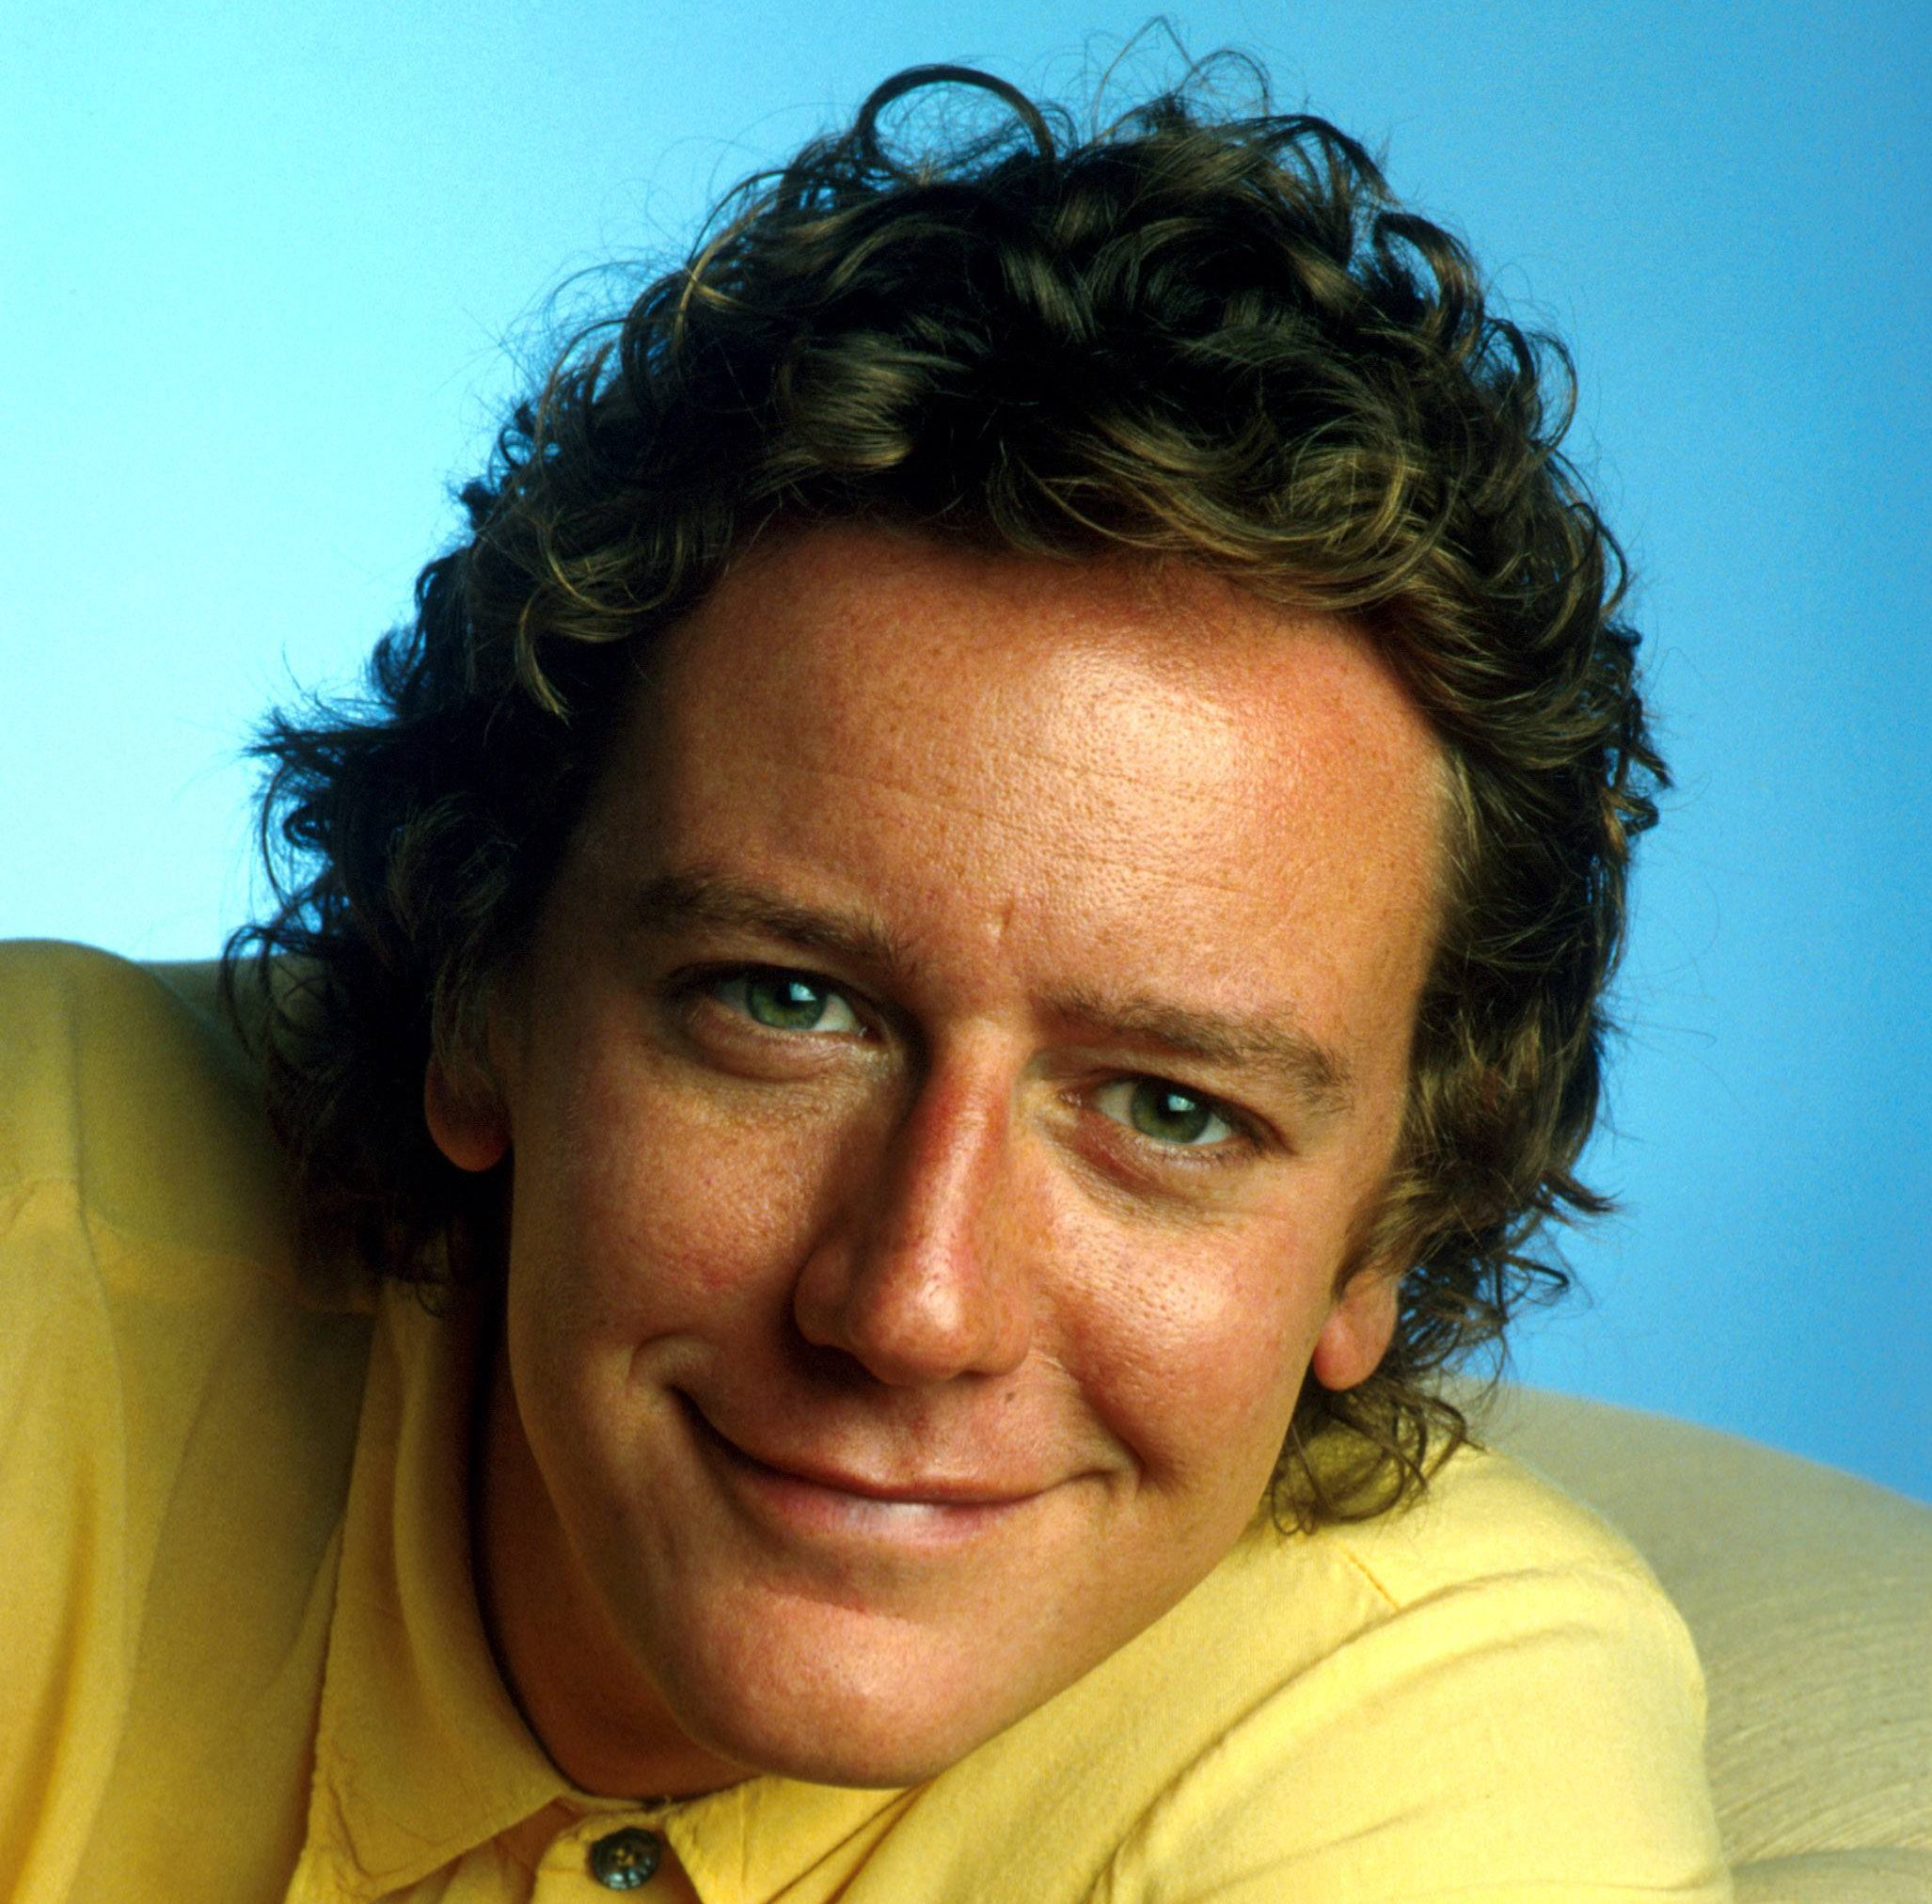 11 6 scaled e1602499791726 Judge Reinhold: How He Got The Name 'Judge' And More You Never Knew About The 80s Star